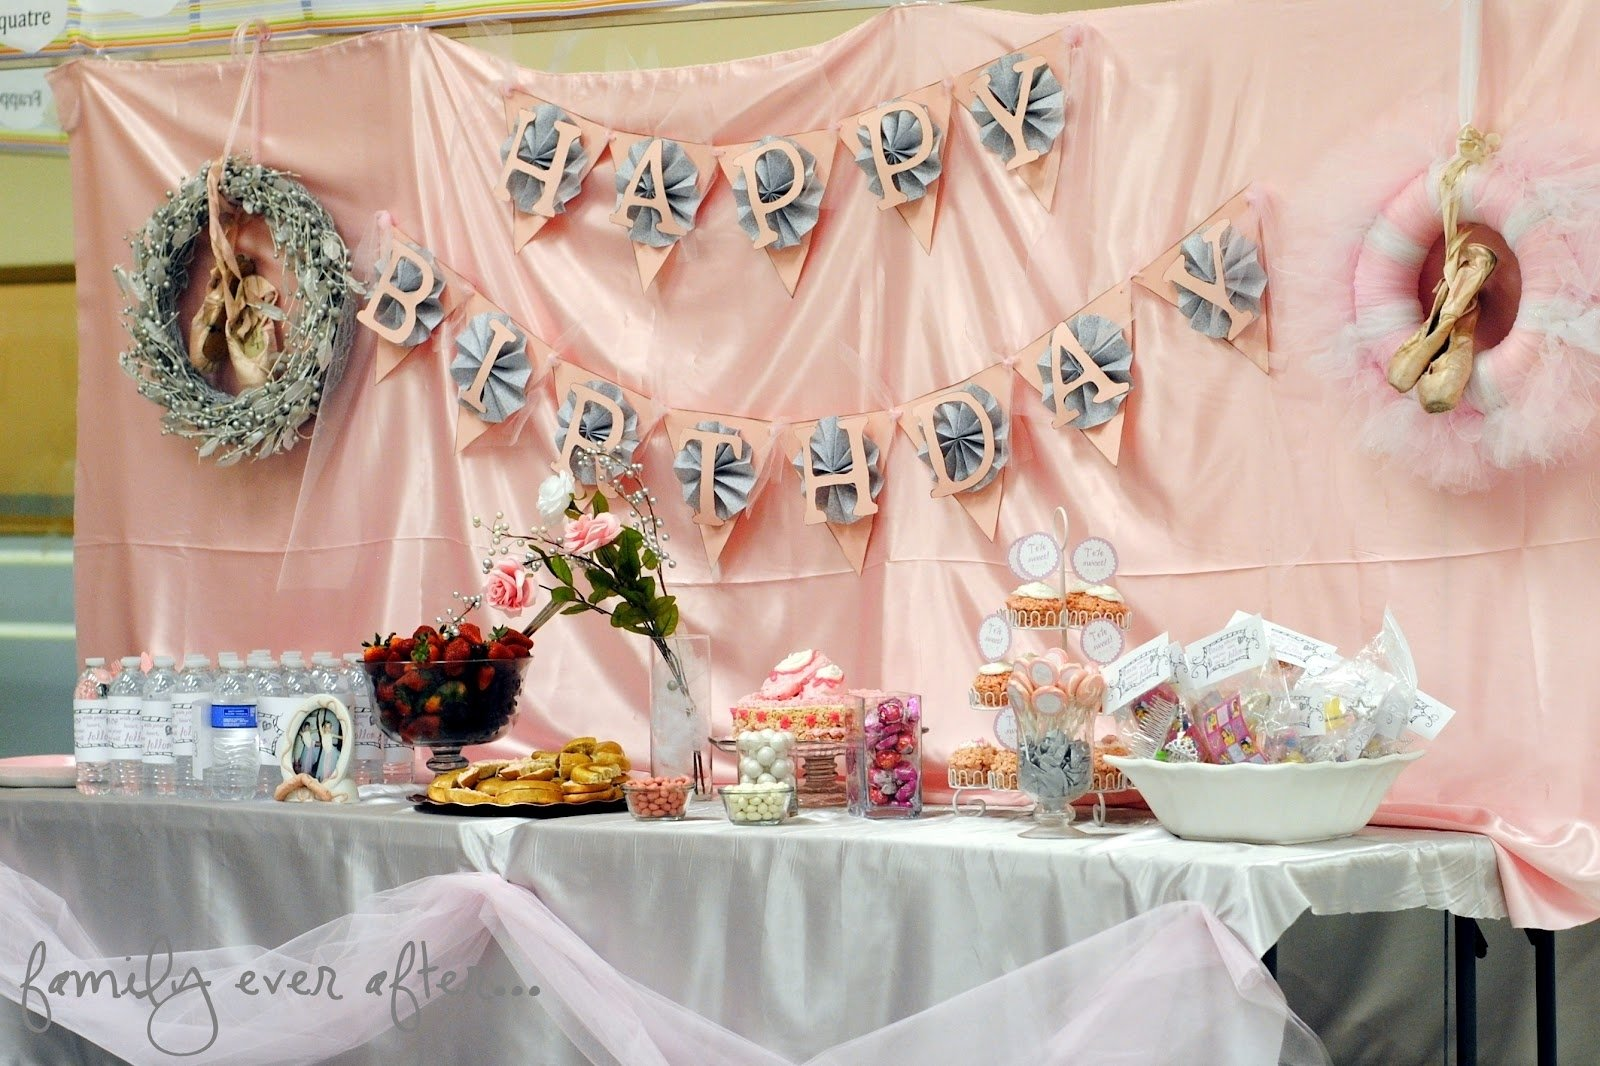 10 Fantastic Birthday Party Ideas For Girls 50 birthday party themes for girls i heart nap time 25 2020